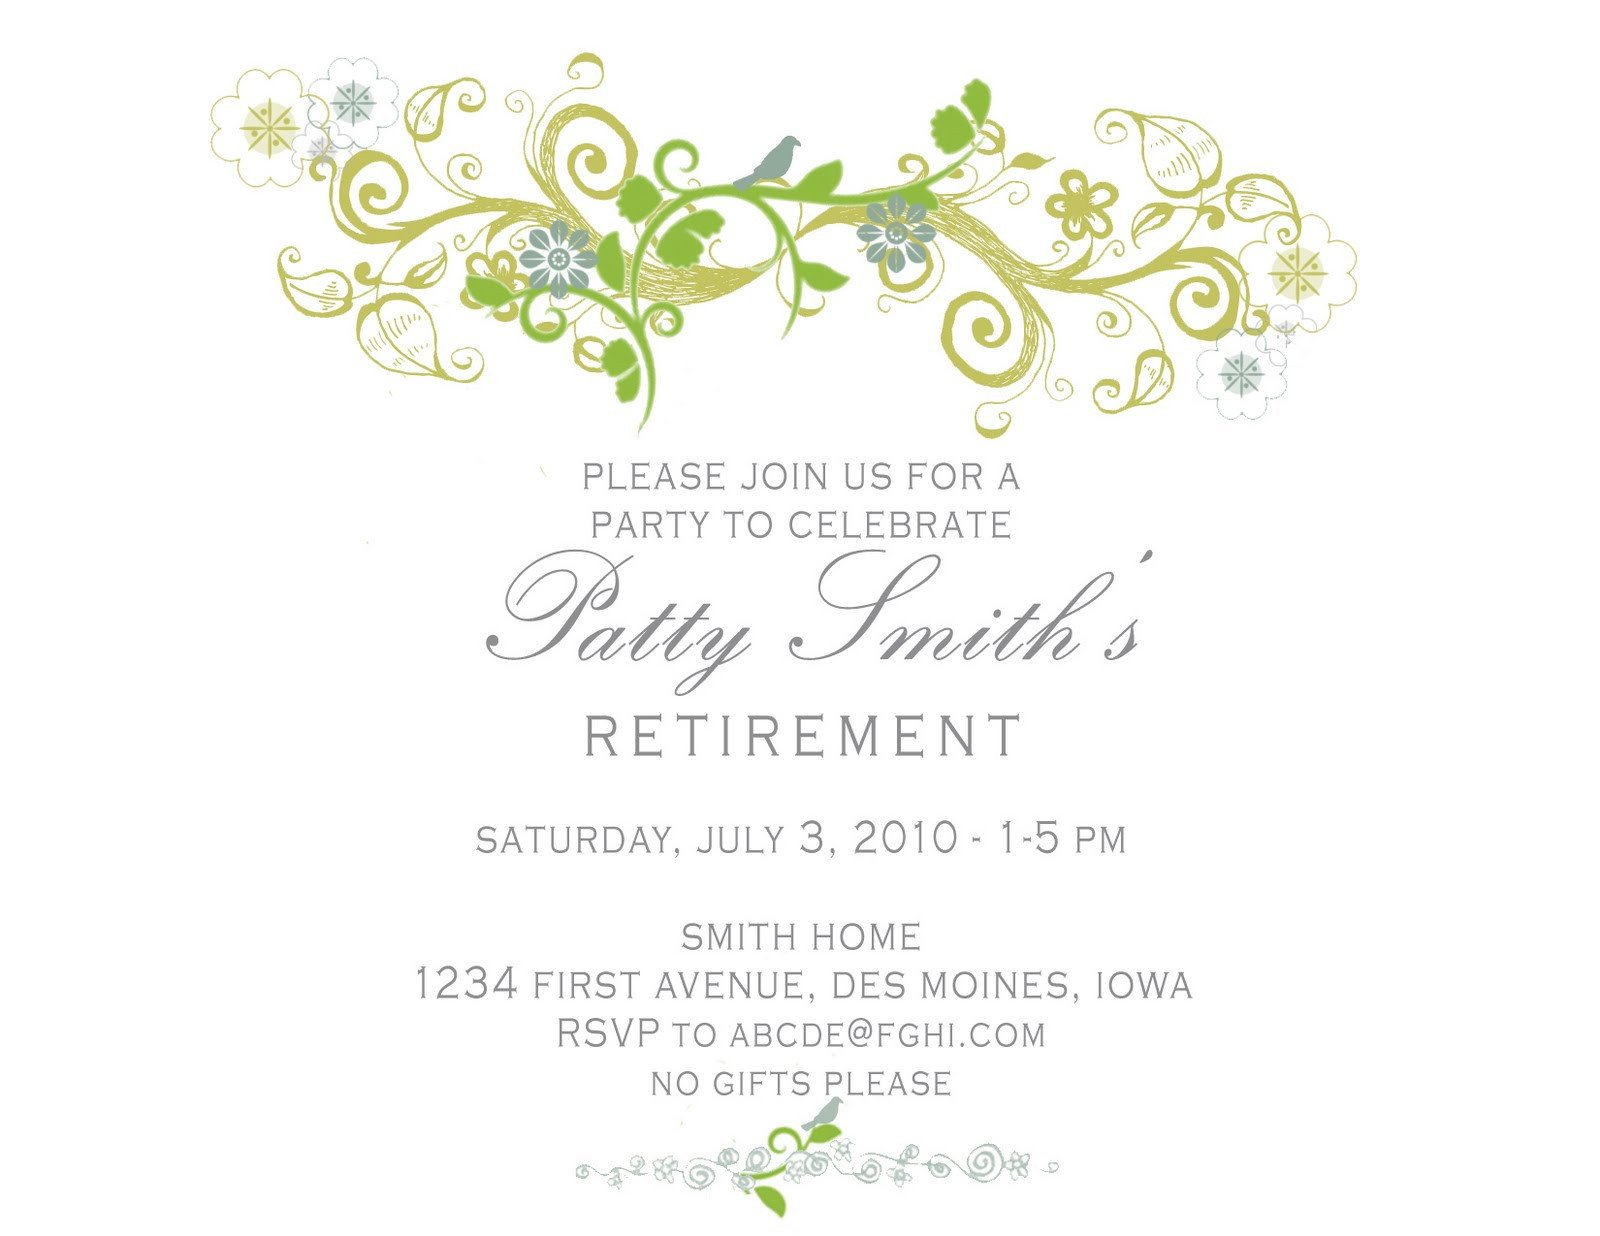 Retirement Party Invite Template Idesign A Retirement Party Invitation